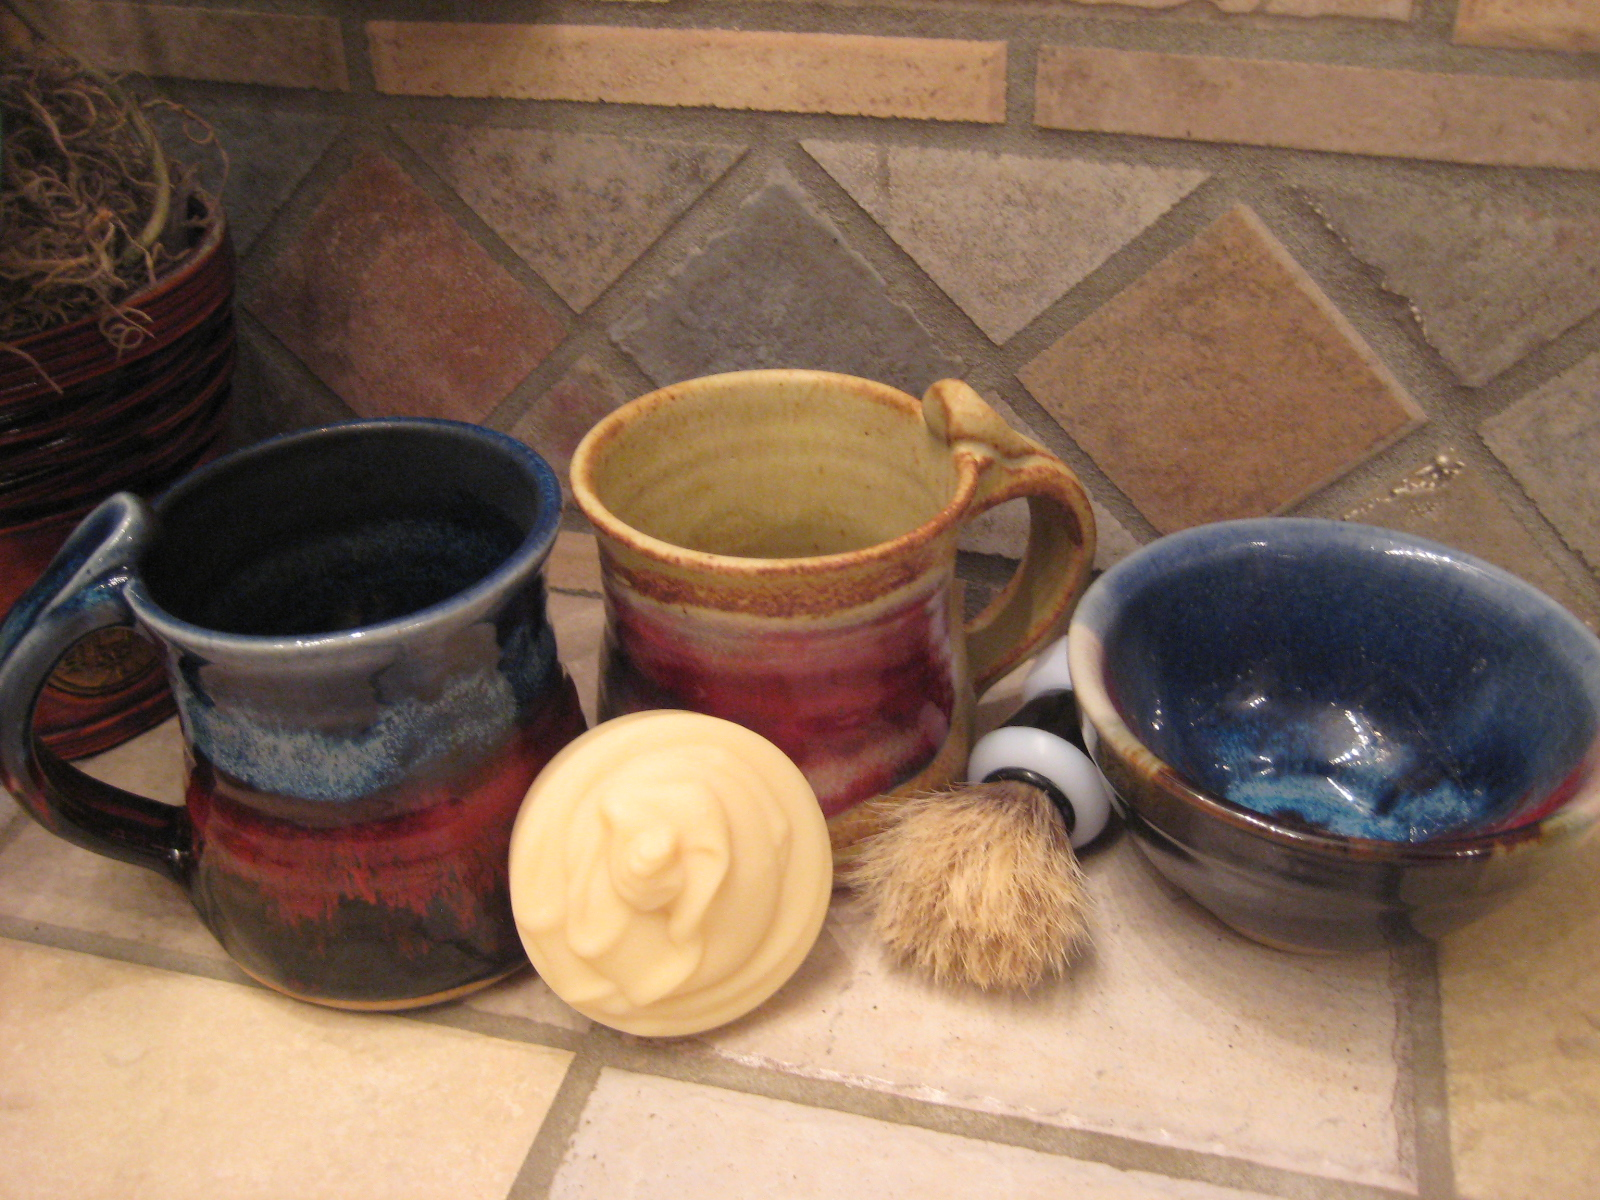 Shaving bowl or mug, shaving soap and brush set